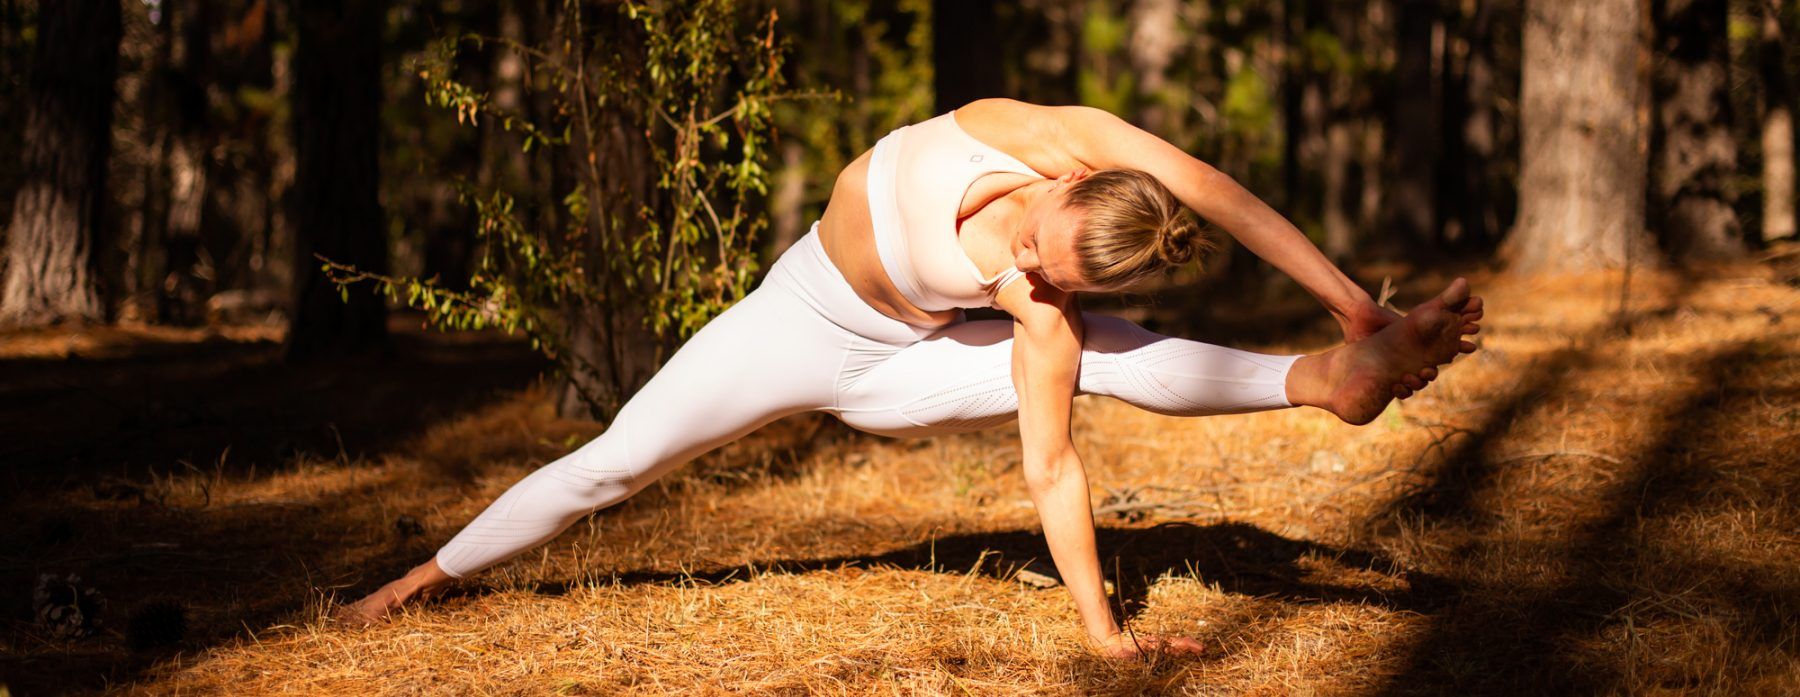 Laura Colless yoga teacher SAMA Studio Coffs Harbour & Armidale NSW